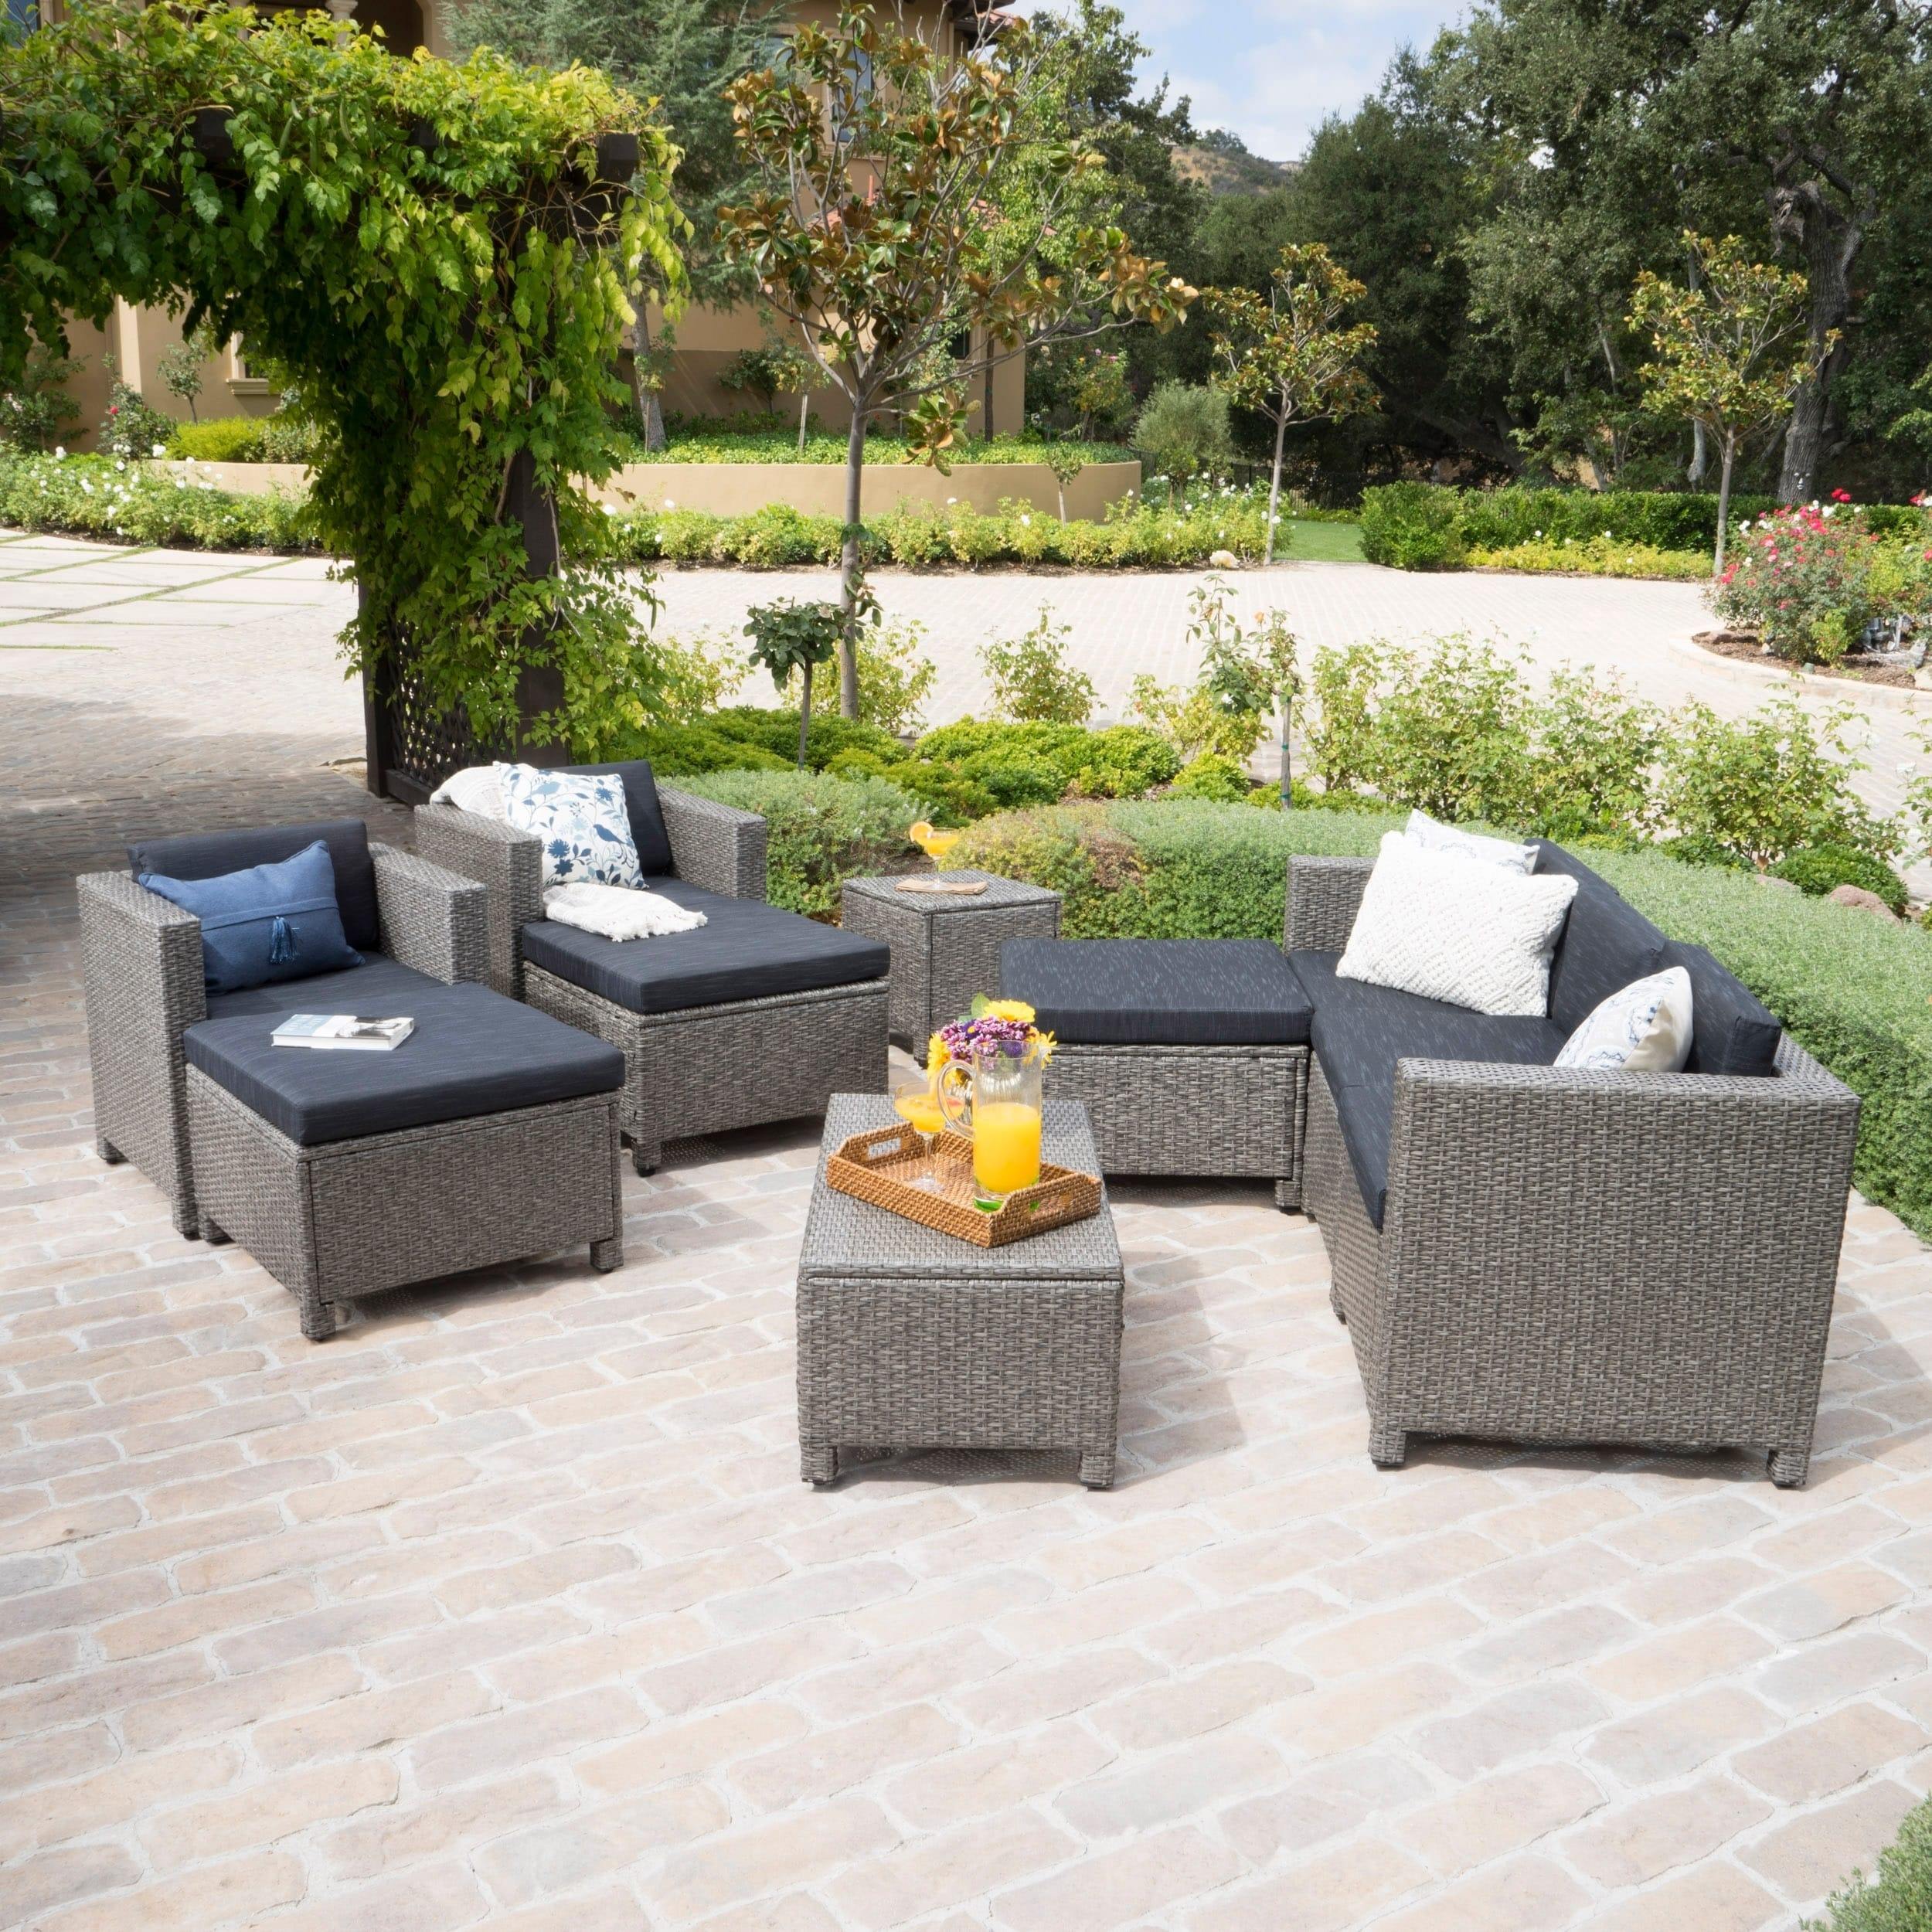 Christopher Knight Home Puerta Outdoor 10-piece Wicker Sofa Set Collection with Cushions by